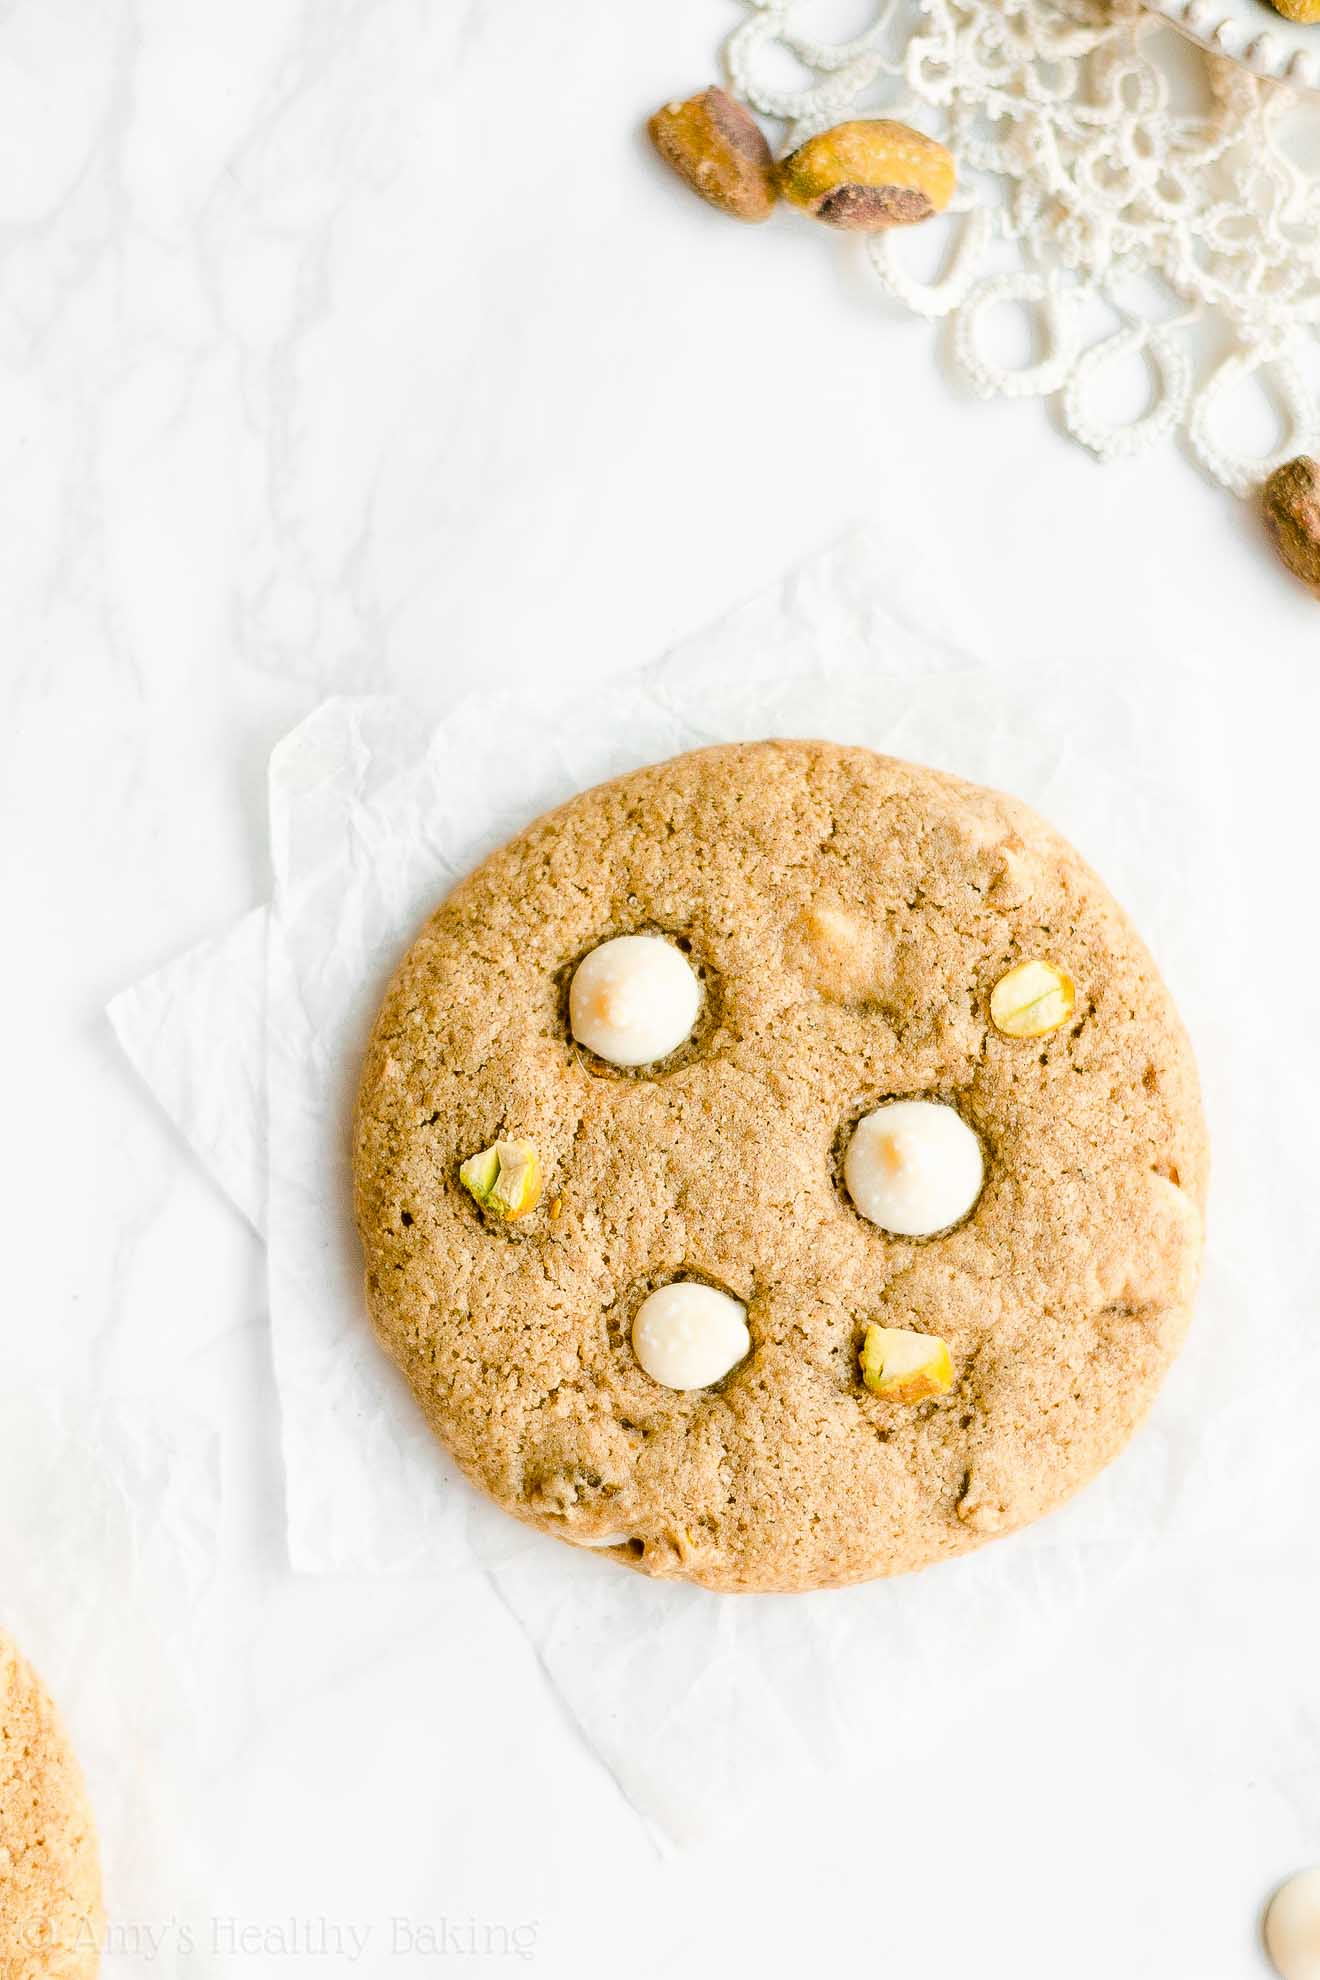 Easy Healthy Gluten Free Vegan Eggless White Chocolate Pistachio Cookies